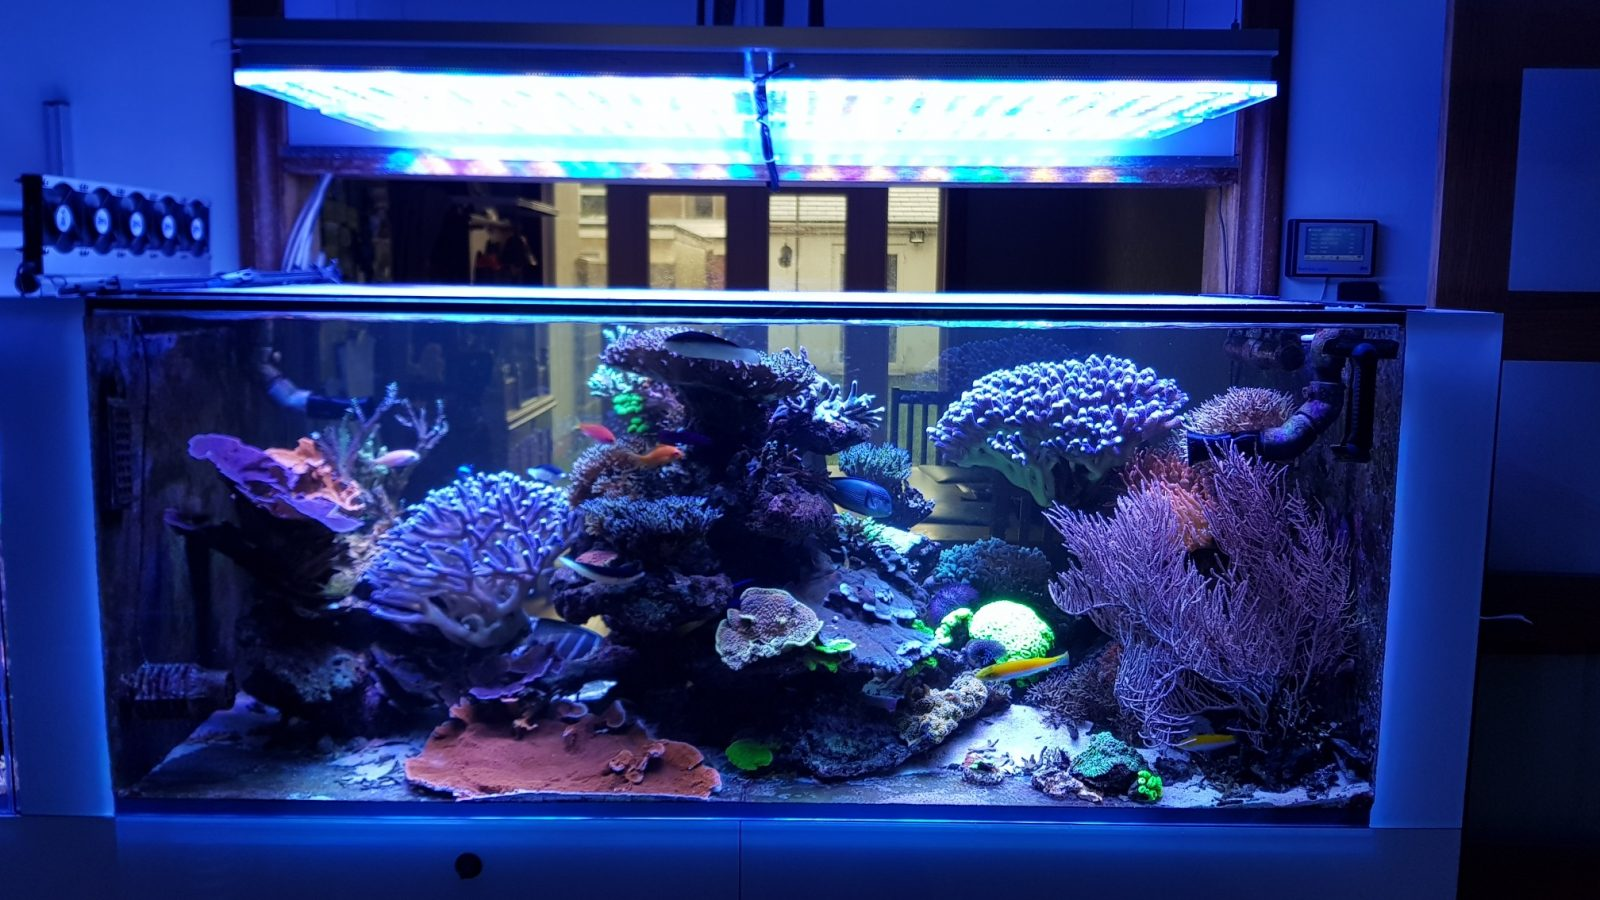 akuarium most_beautiful_reef_LED_